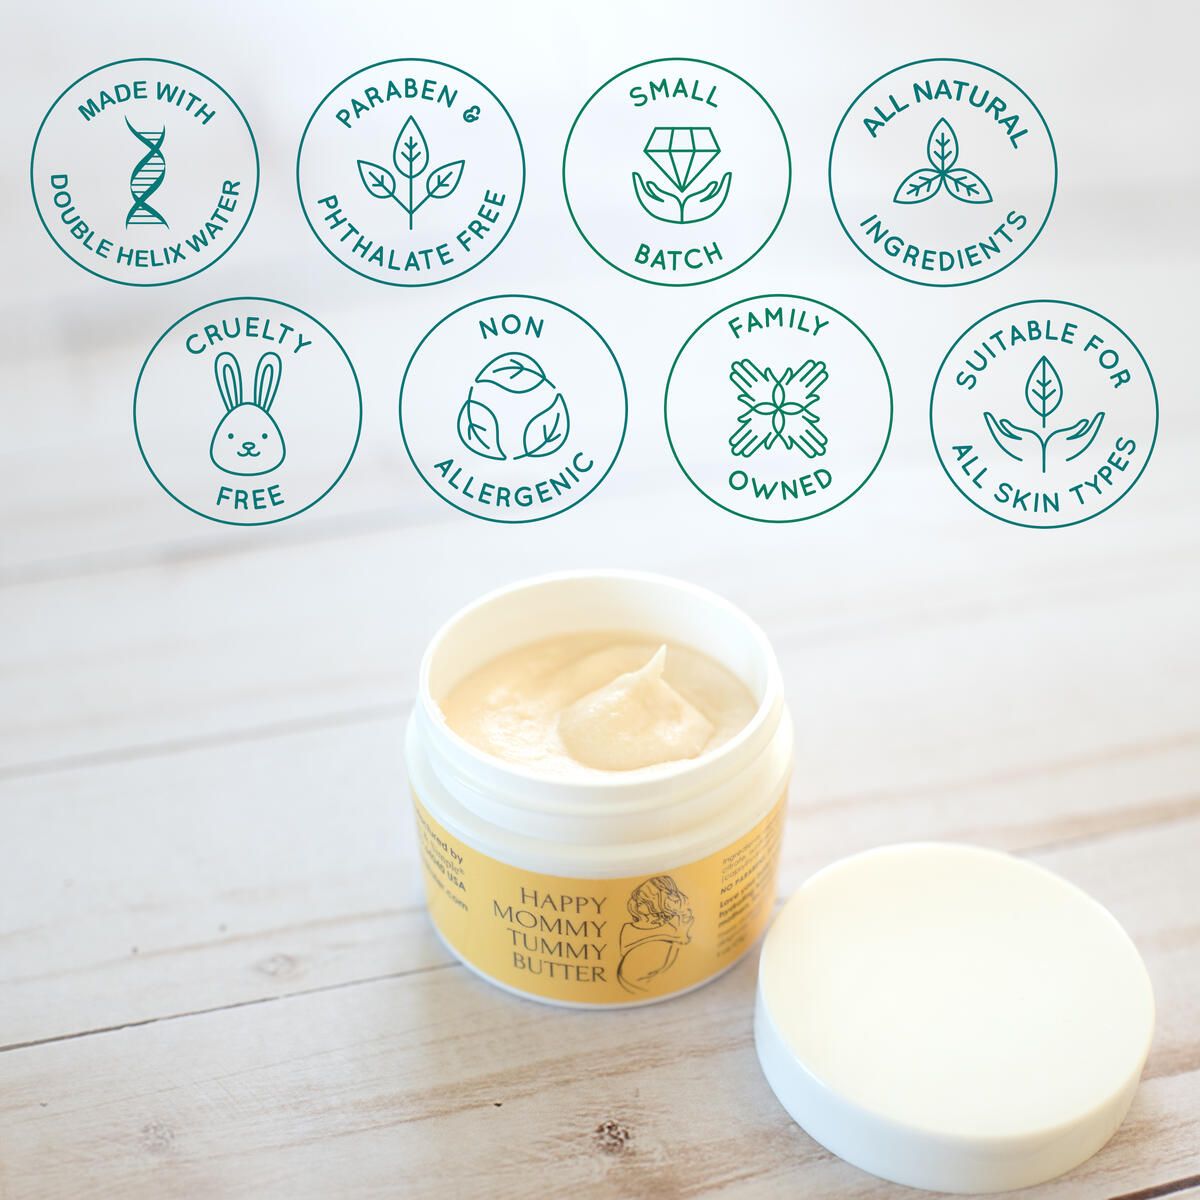 Stretch Mark Prevention Cream for Pregnancy, Stretch Mark Tummy Butter for Pregnancy Skincare, All Natural Organic Belly Cream with Double Helix Water (1 oz)…